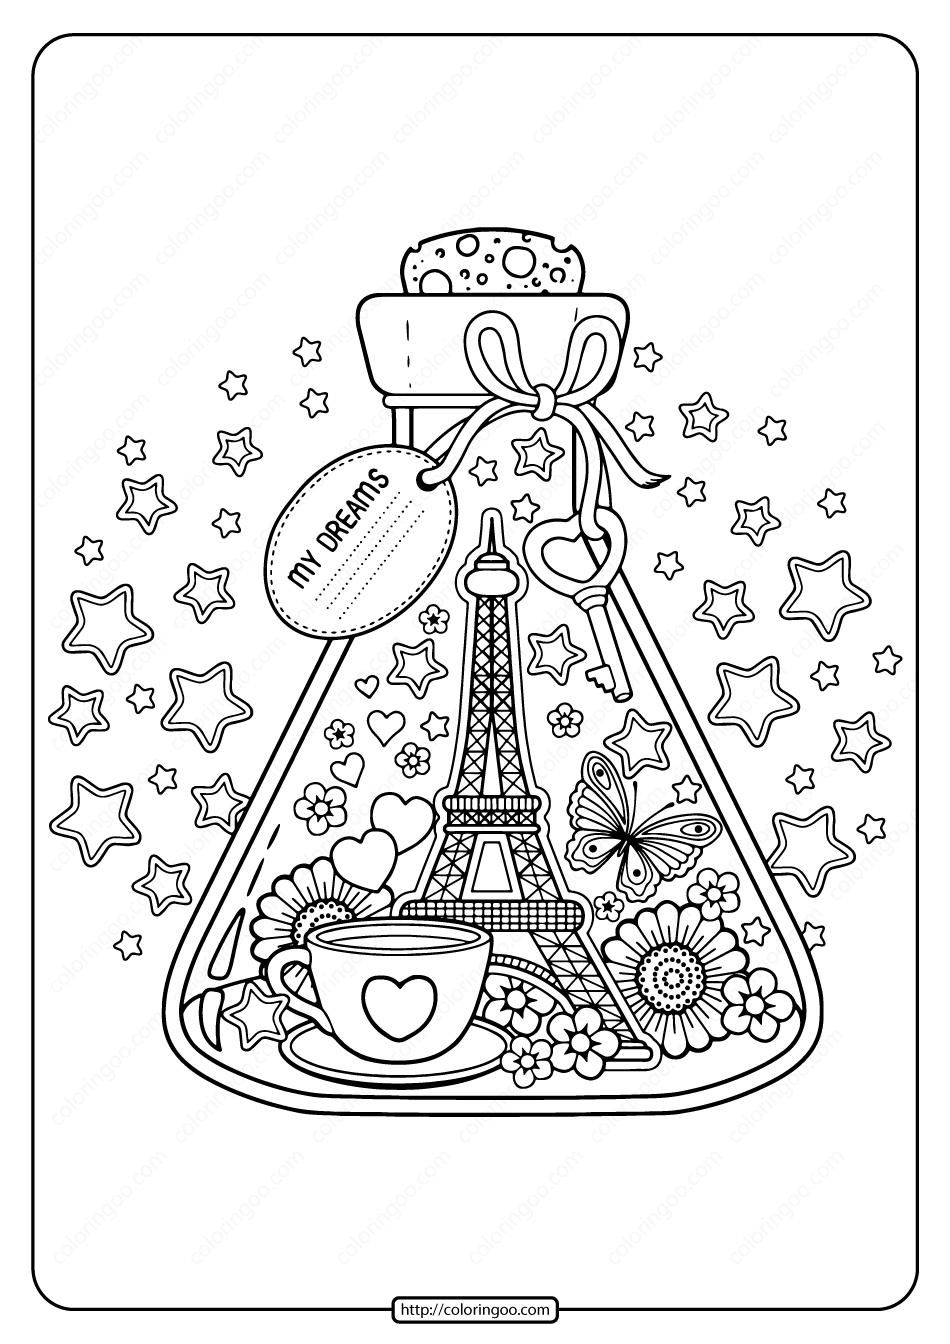 Printable Paris City Of Love Pdf Coloring Page High Quality Free Printable Coloring Drawing Paint In 2020 Coloring Pages Valentines Day Coloring Love Coloring Pages